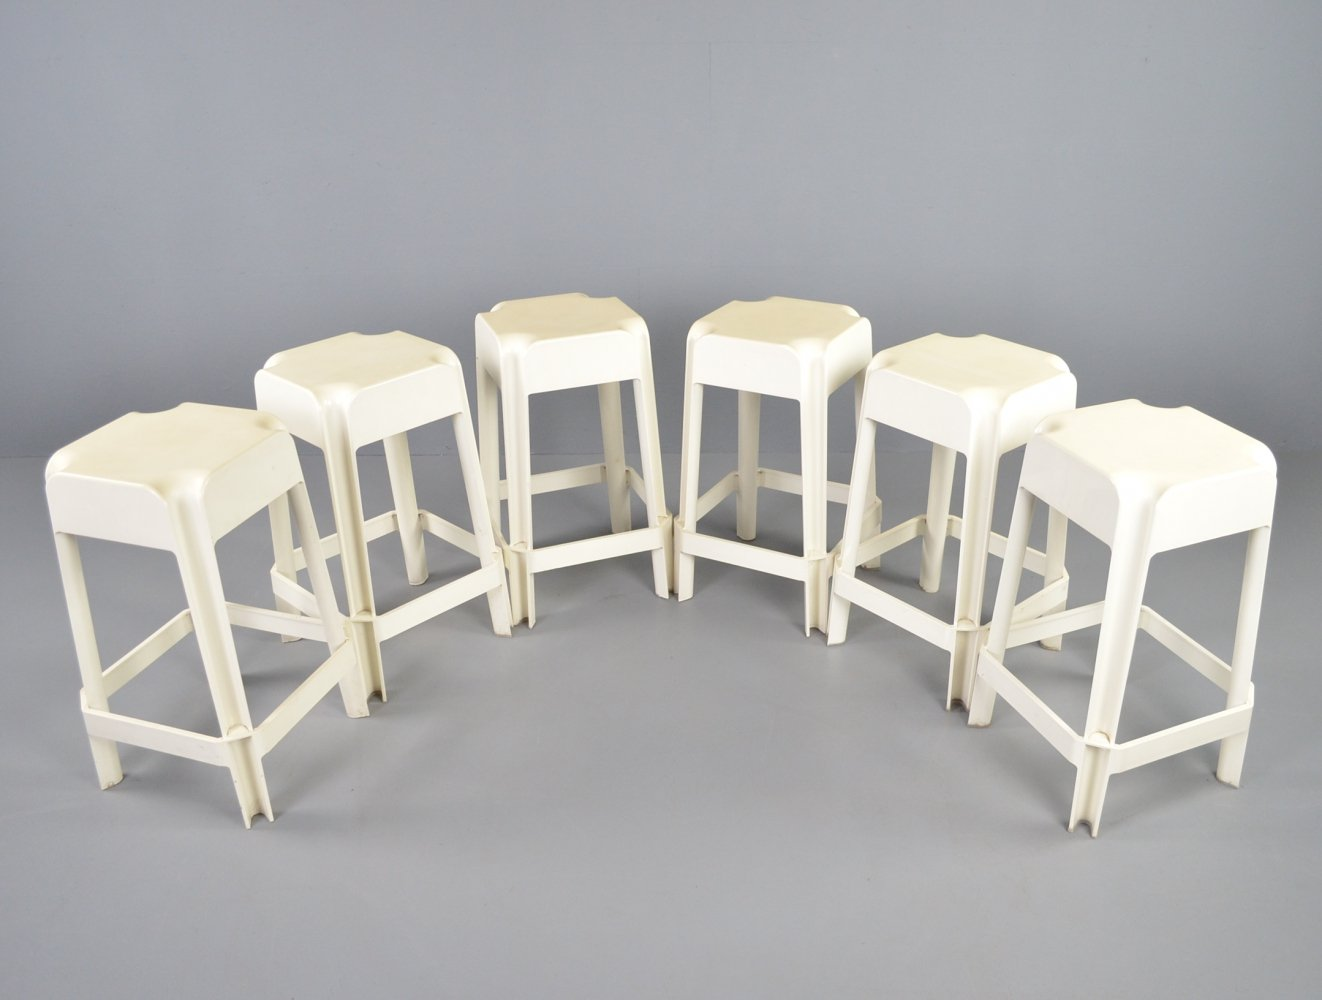 Set of 6 Space age plastic barstools, 1970s